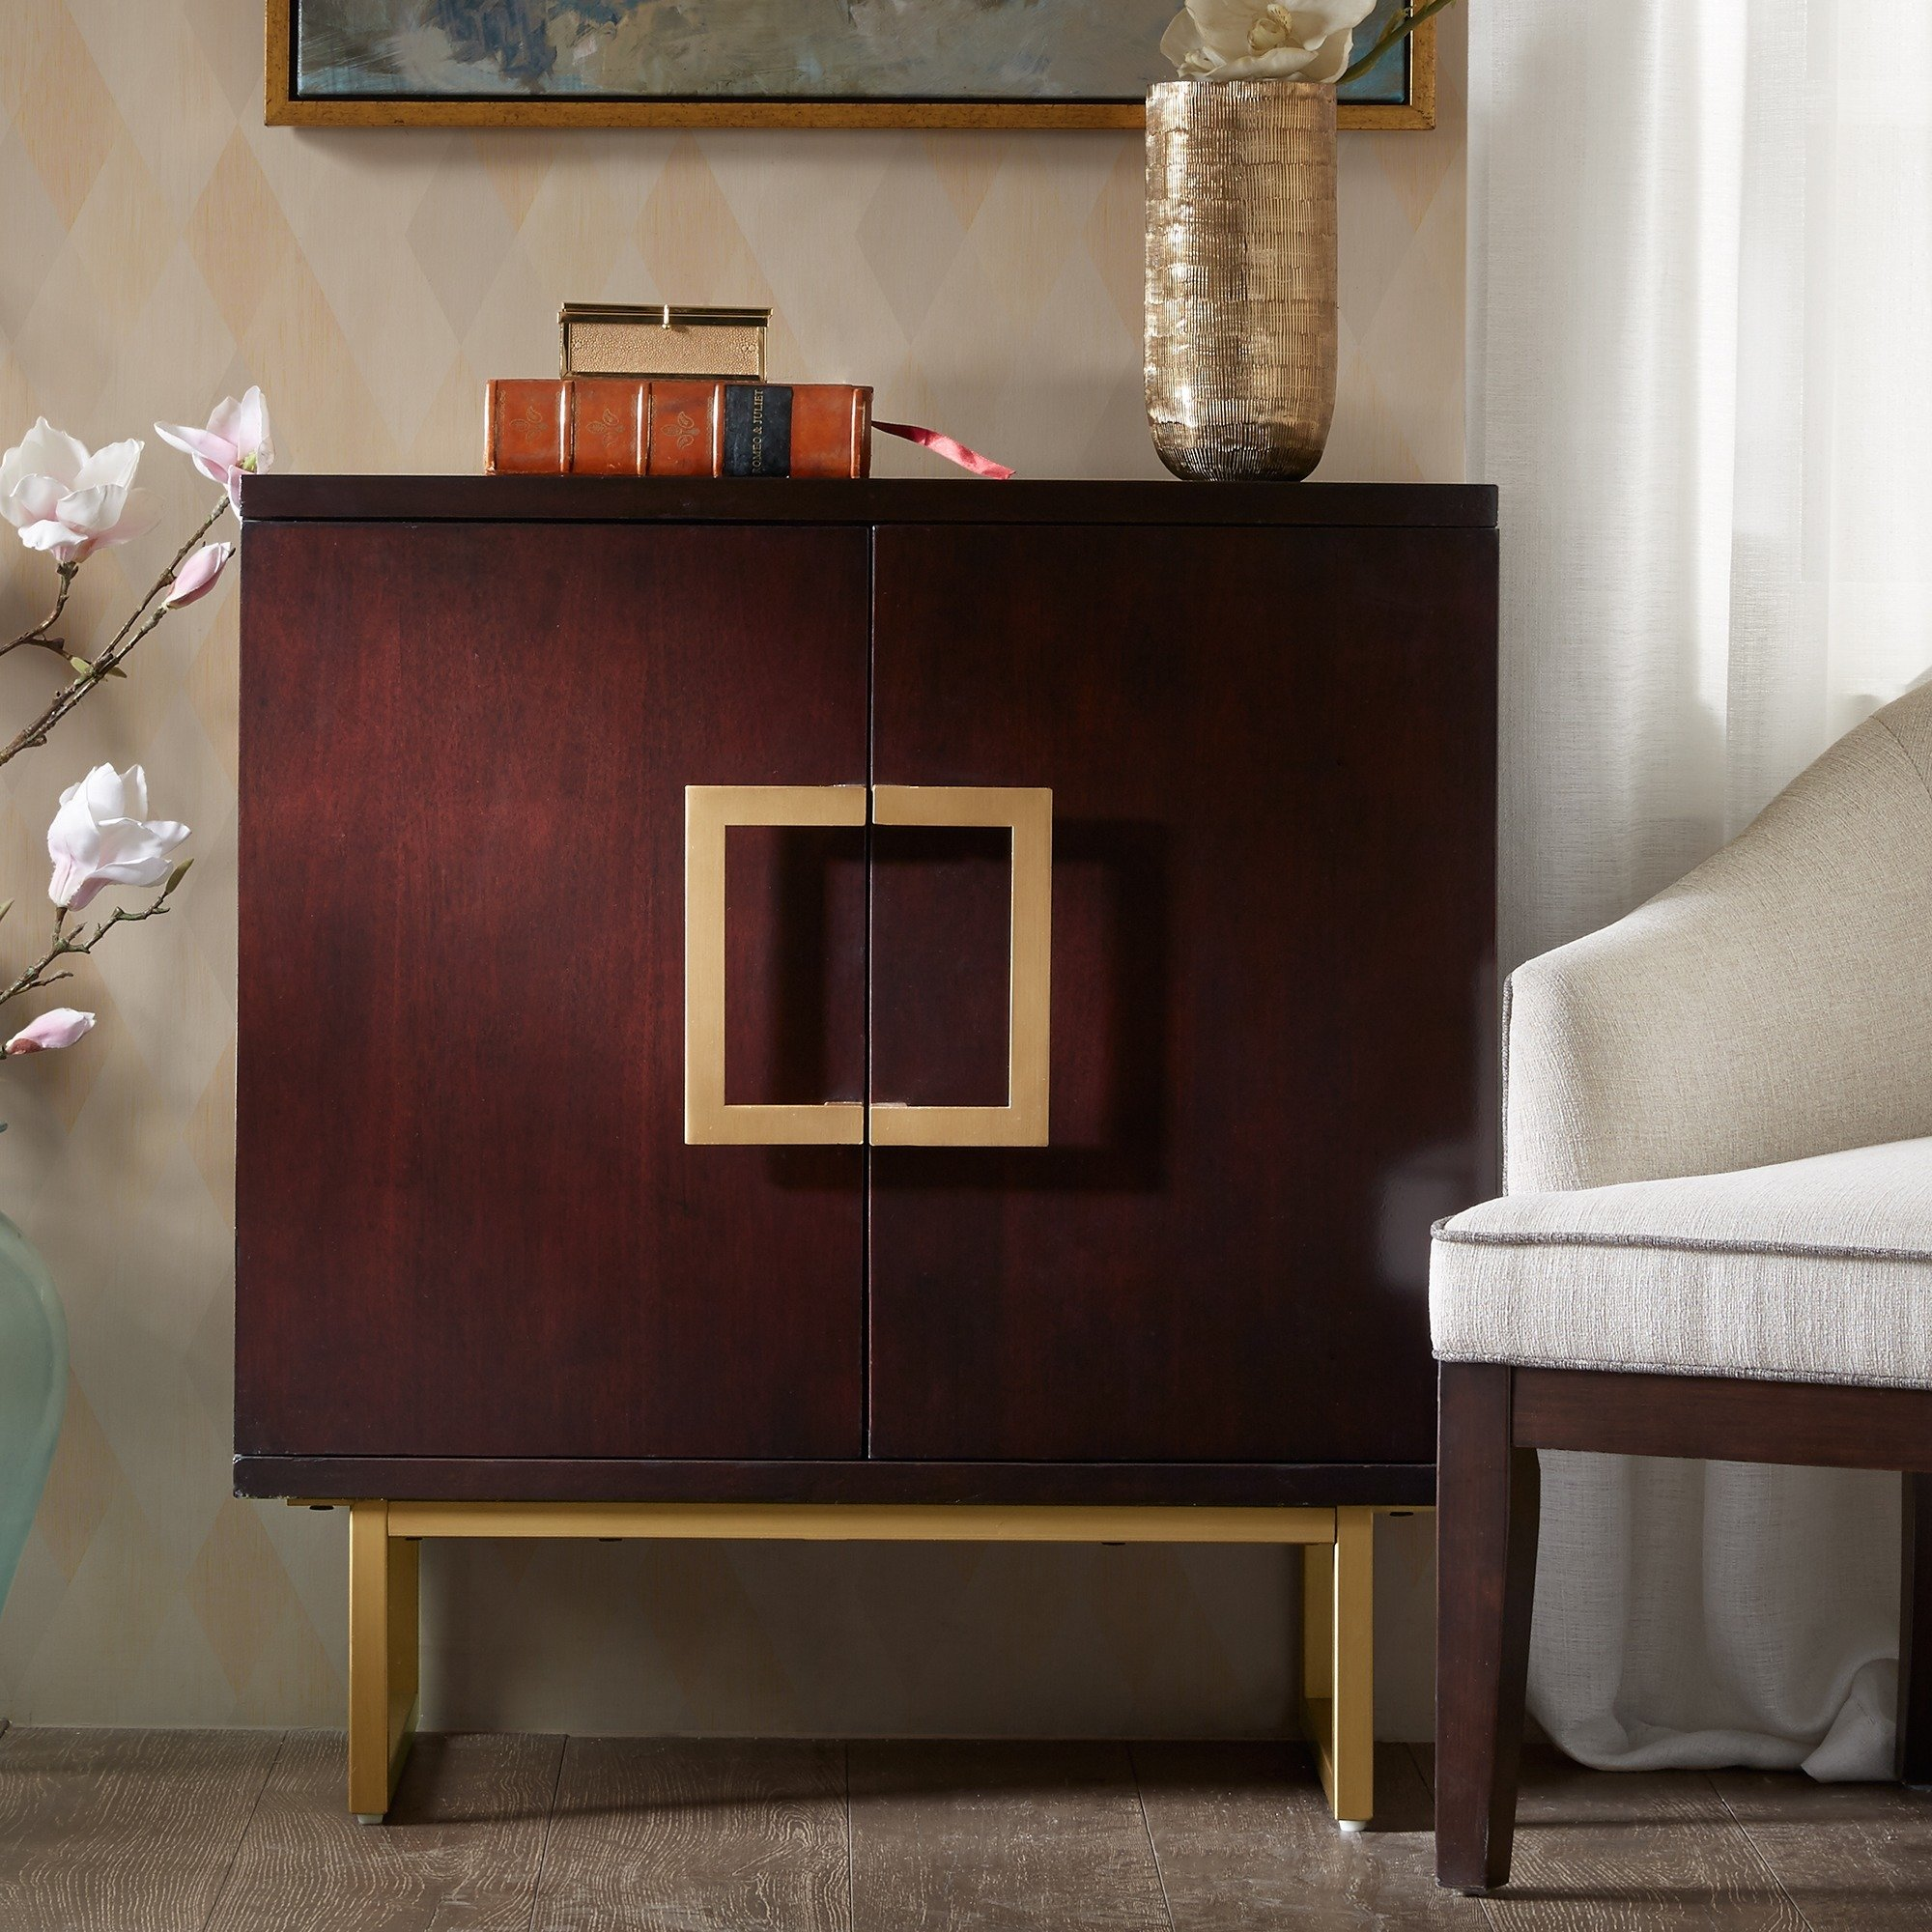 madison park kenzie gold chest free shipping today brown accent table vintage octagon side target kindle fire house interior design campaign console mirrors nautical bar lights